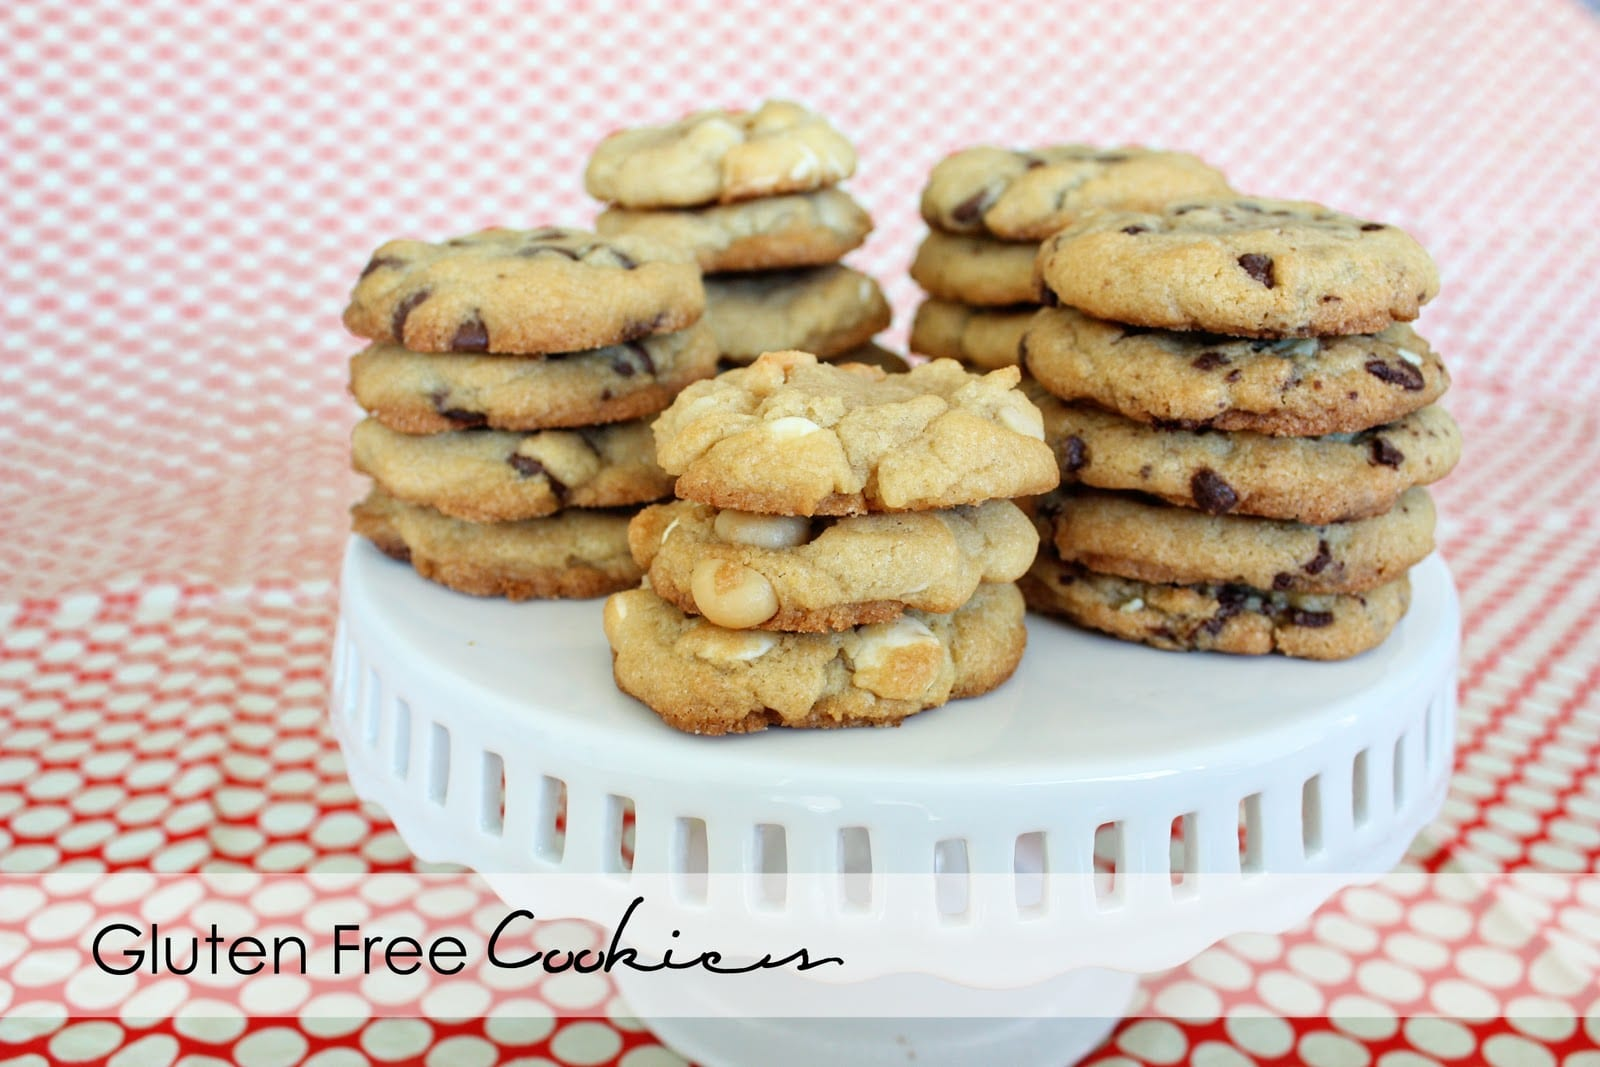 Gluten Free Cookies…….Shared!